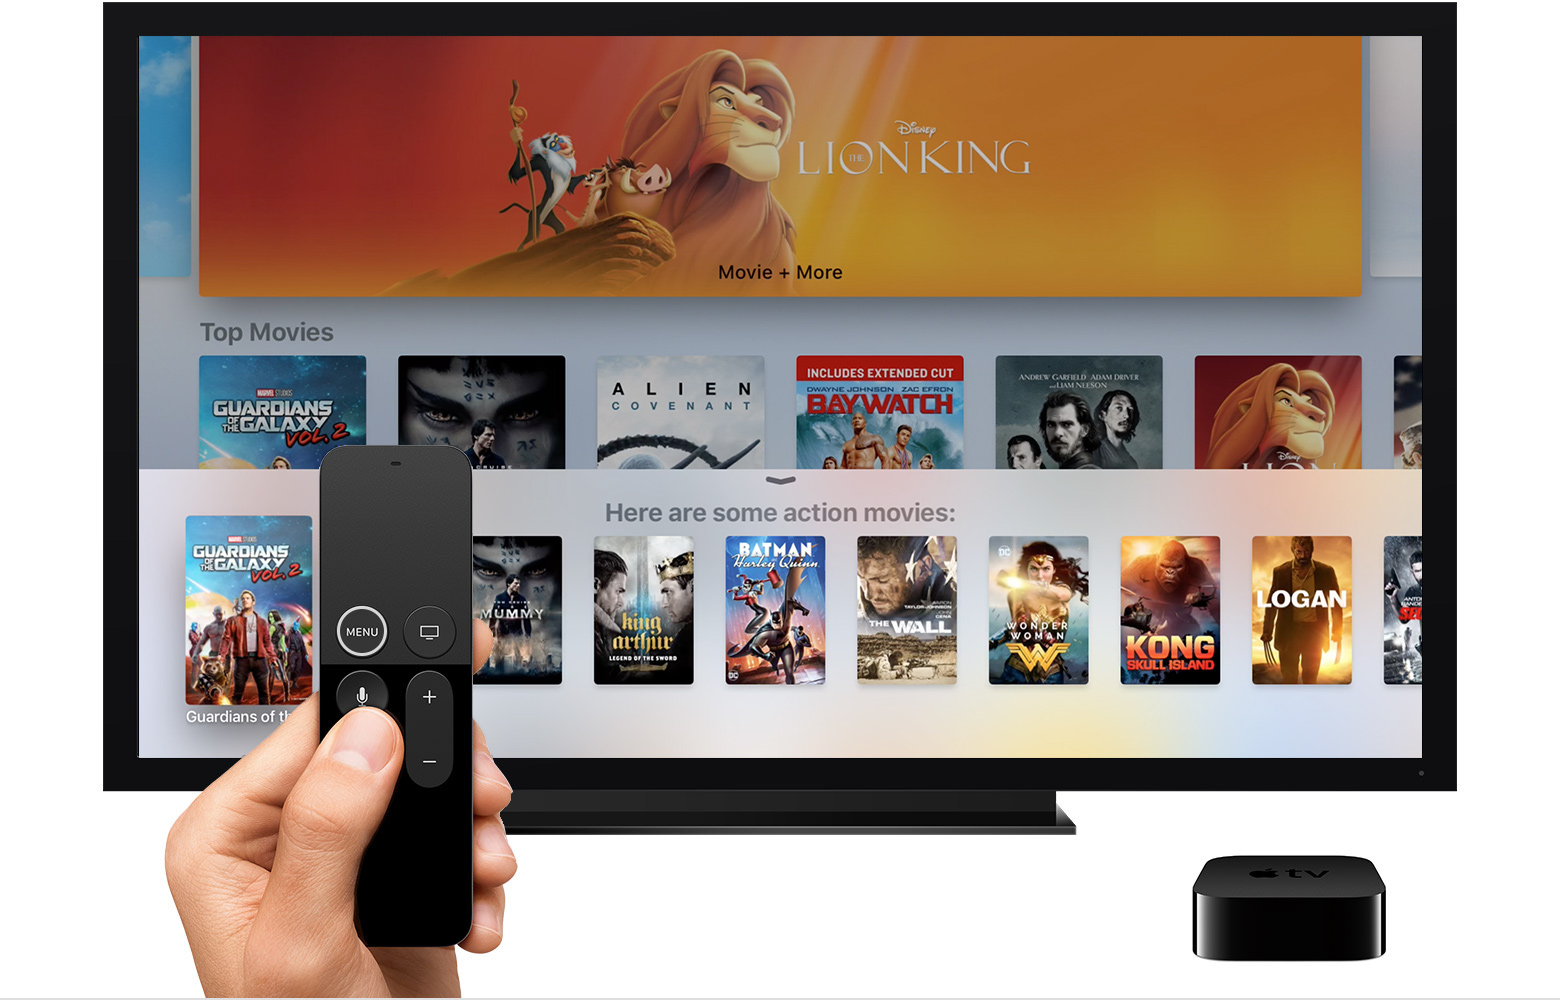 How to Add Movies to Apple TV